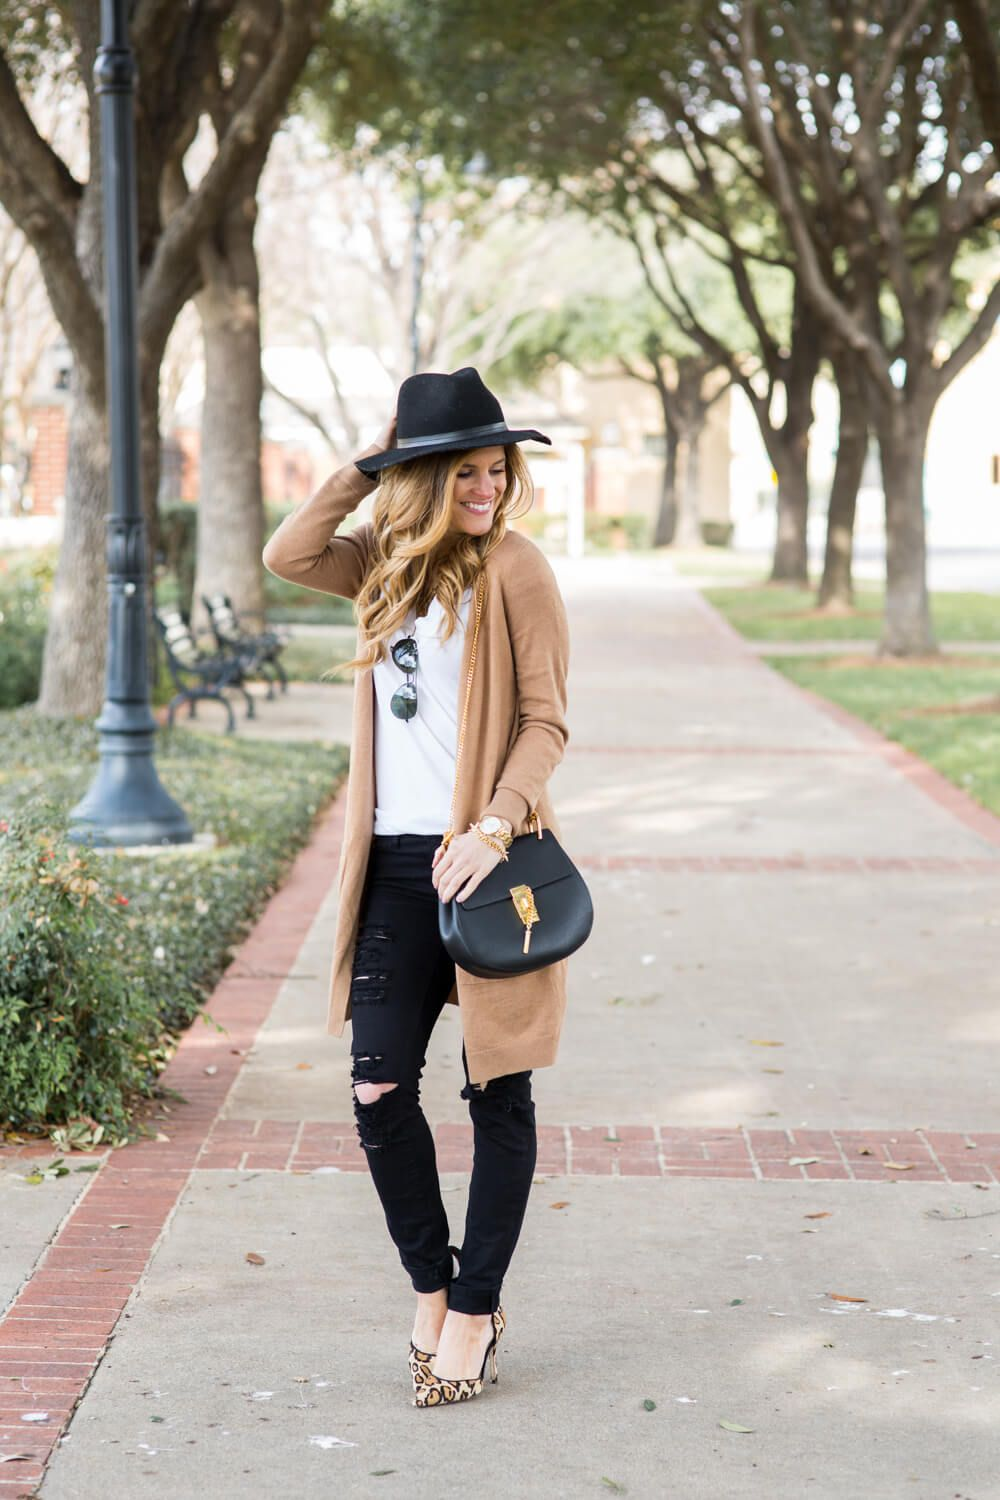 What To Wear With Black Jeans 30 Black Jeans Outfit Ideas Outfits With Hats How To Wear Cardigan Fall Outfits Women